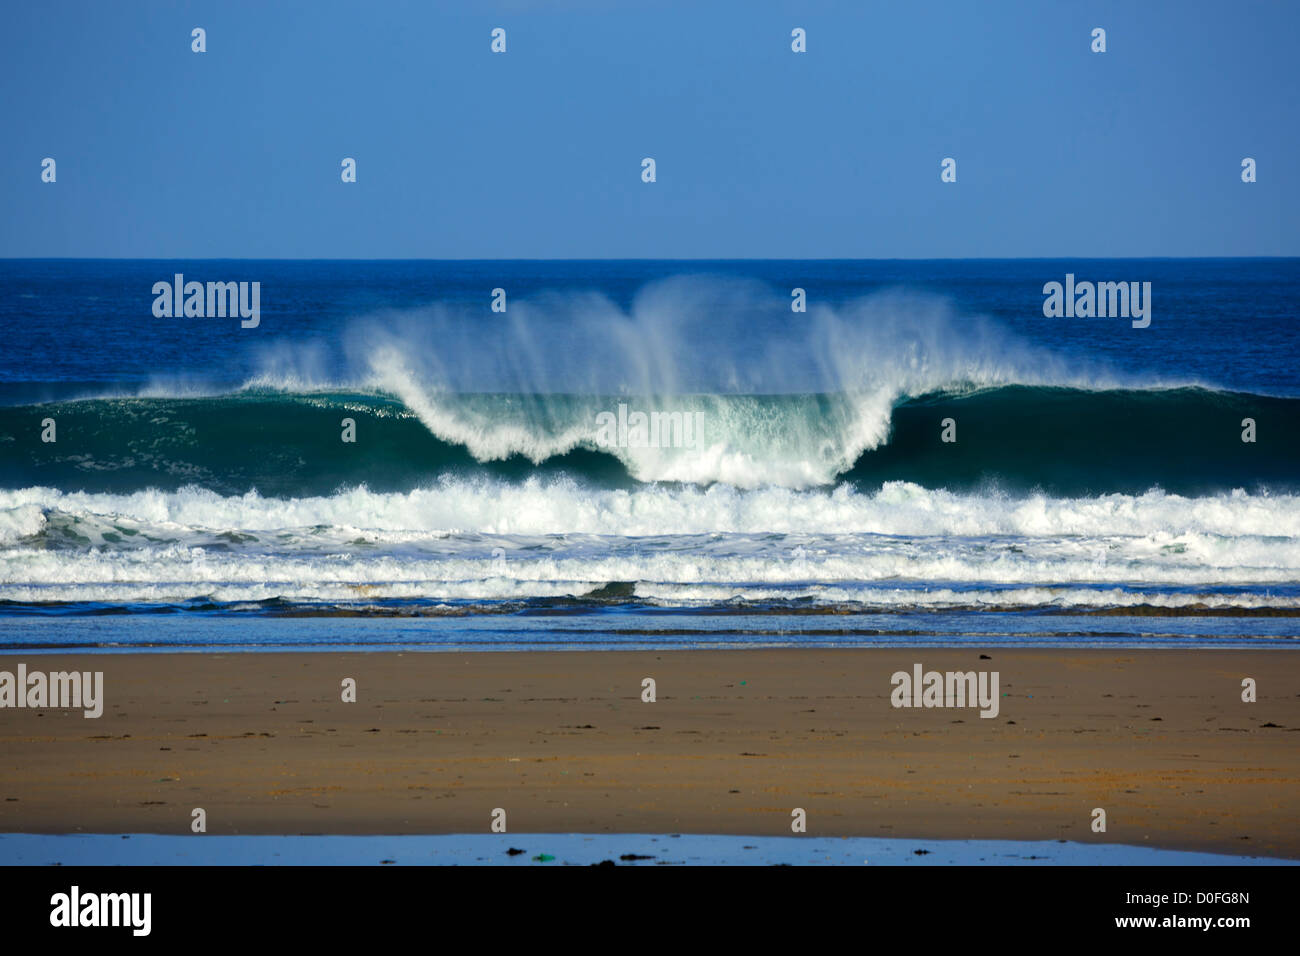 Portreath, Cornwall. A wave breaks on the beach. - Stock Image